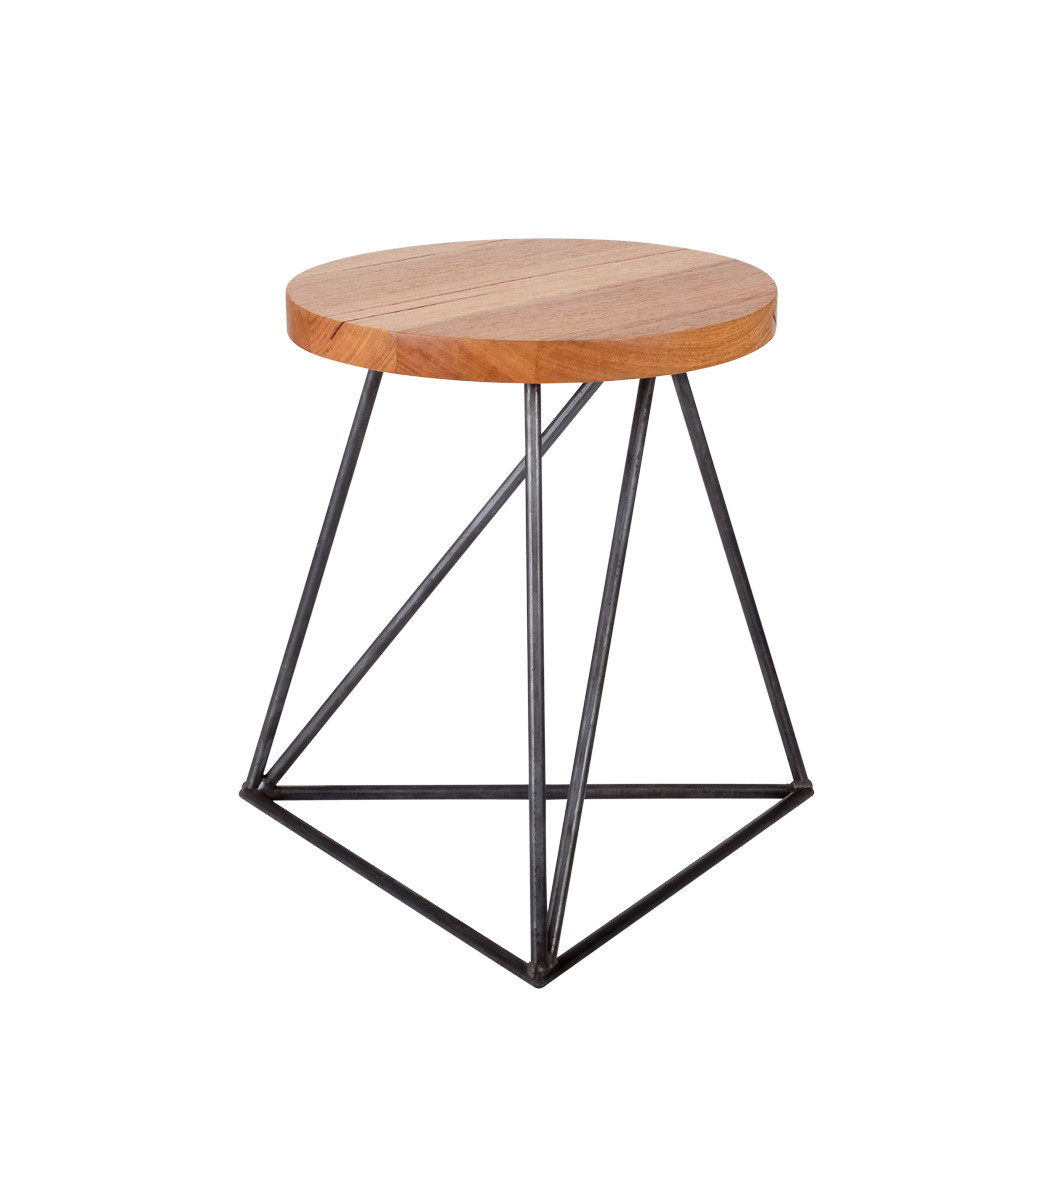 Furniture stools Hairpin Legs Stool industrial triangle 90 degree view round top